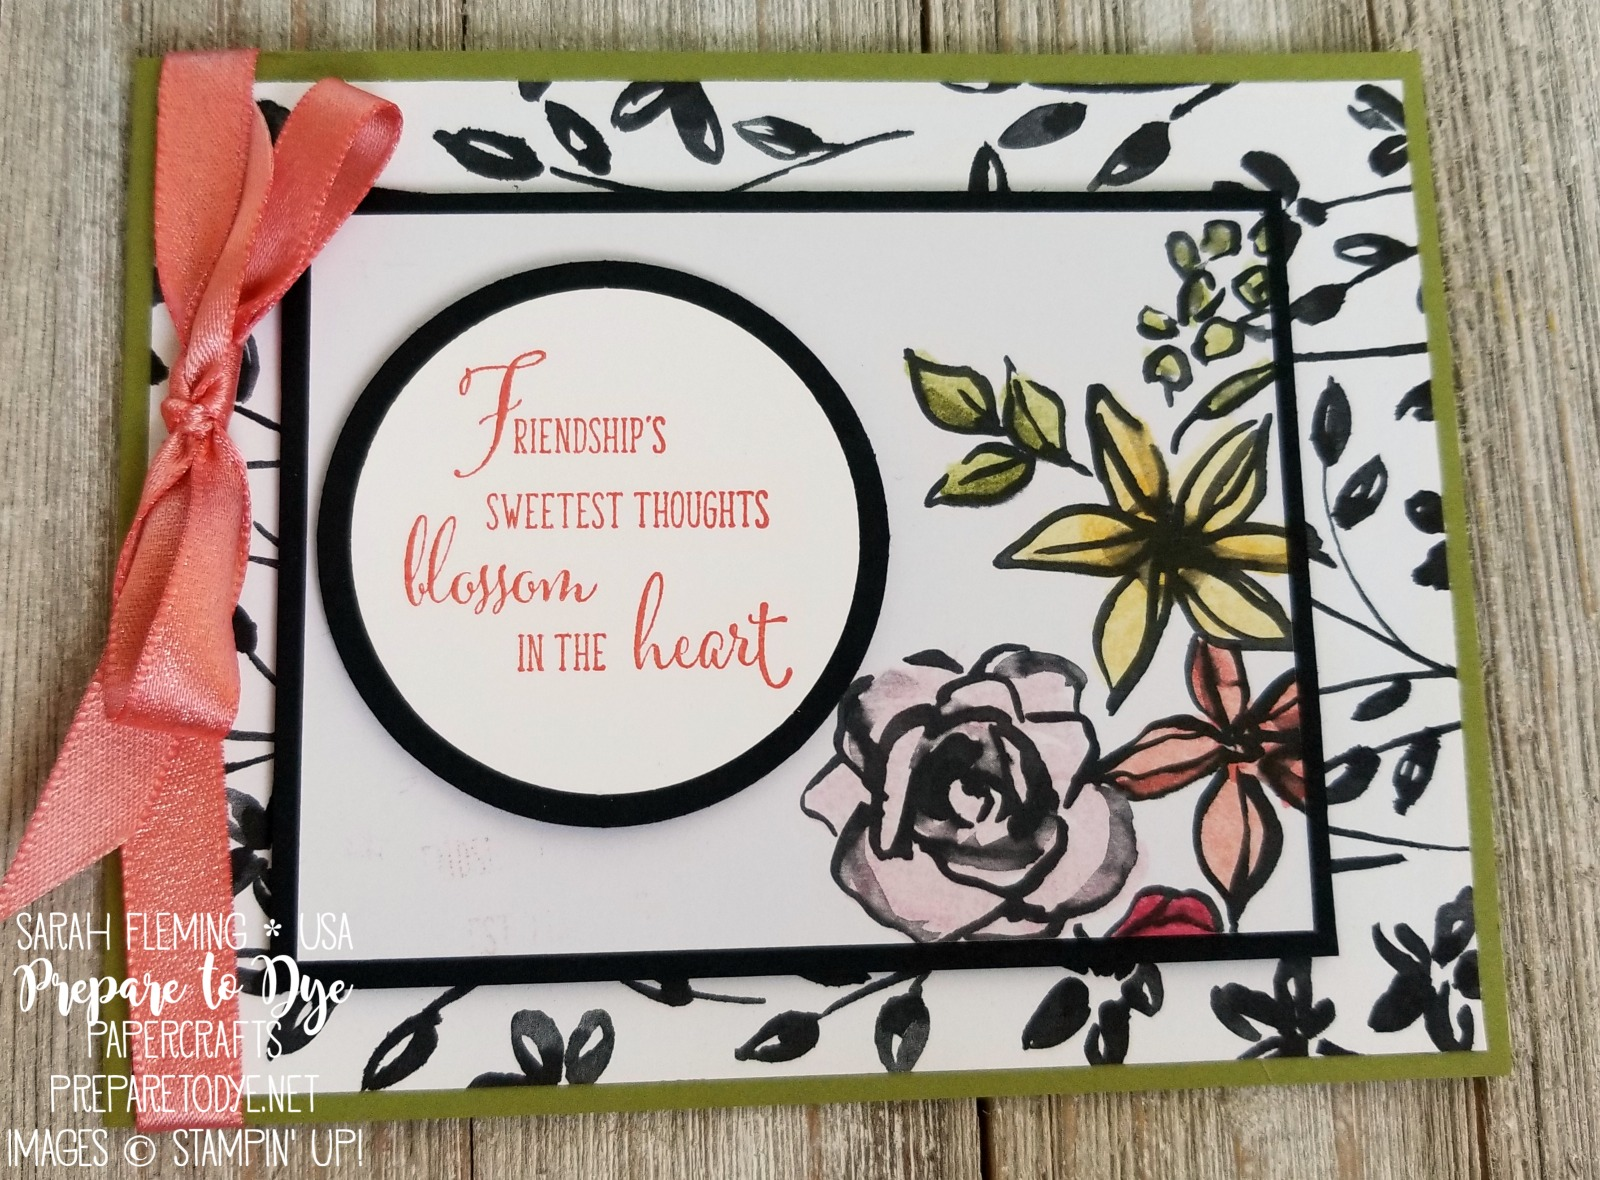 Stampin' Up! Friendship's Sweetest Thoughts, Petal Passion paper, Petal Passion Memories & More cards, Stampin' Blends, Sale-A-Bration free shimmer ribbon - 2018 Occasions catalog and Sale-A-Bration start January 3 - Sarah Fleming - Prepare to Dye Papercrafts